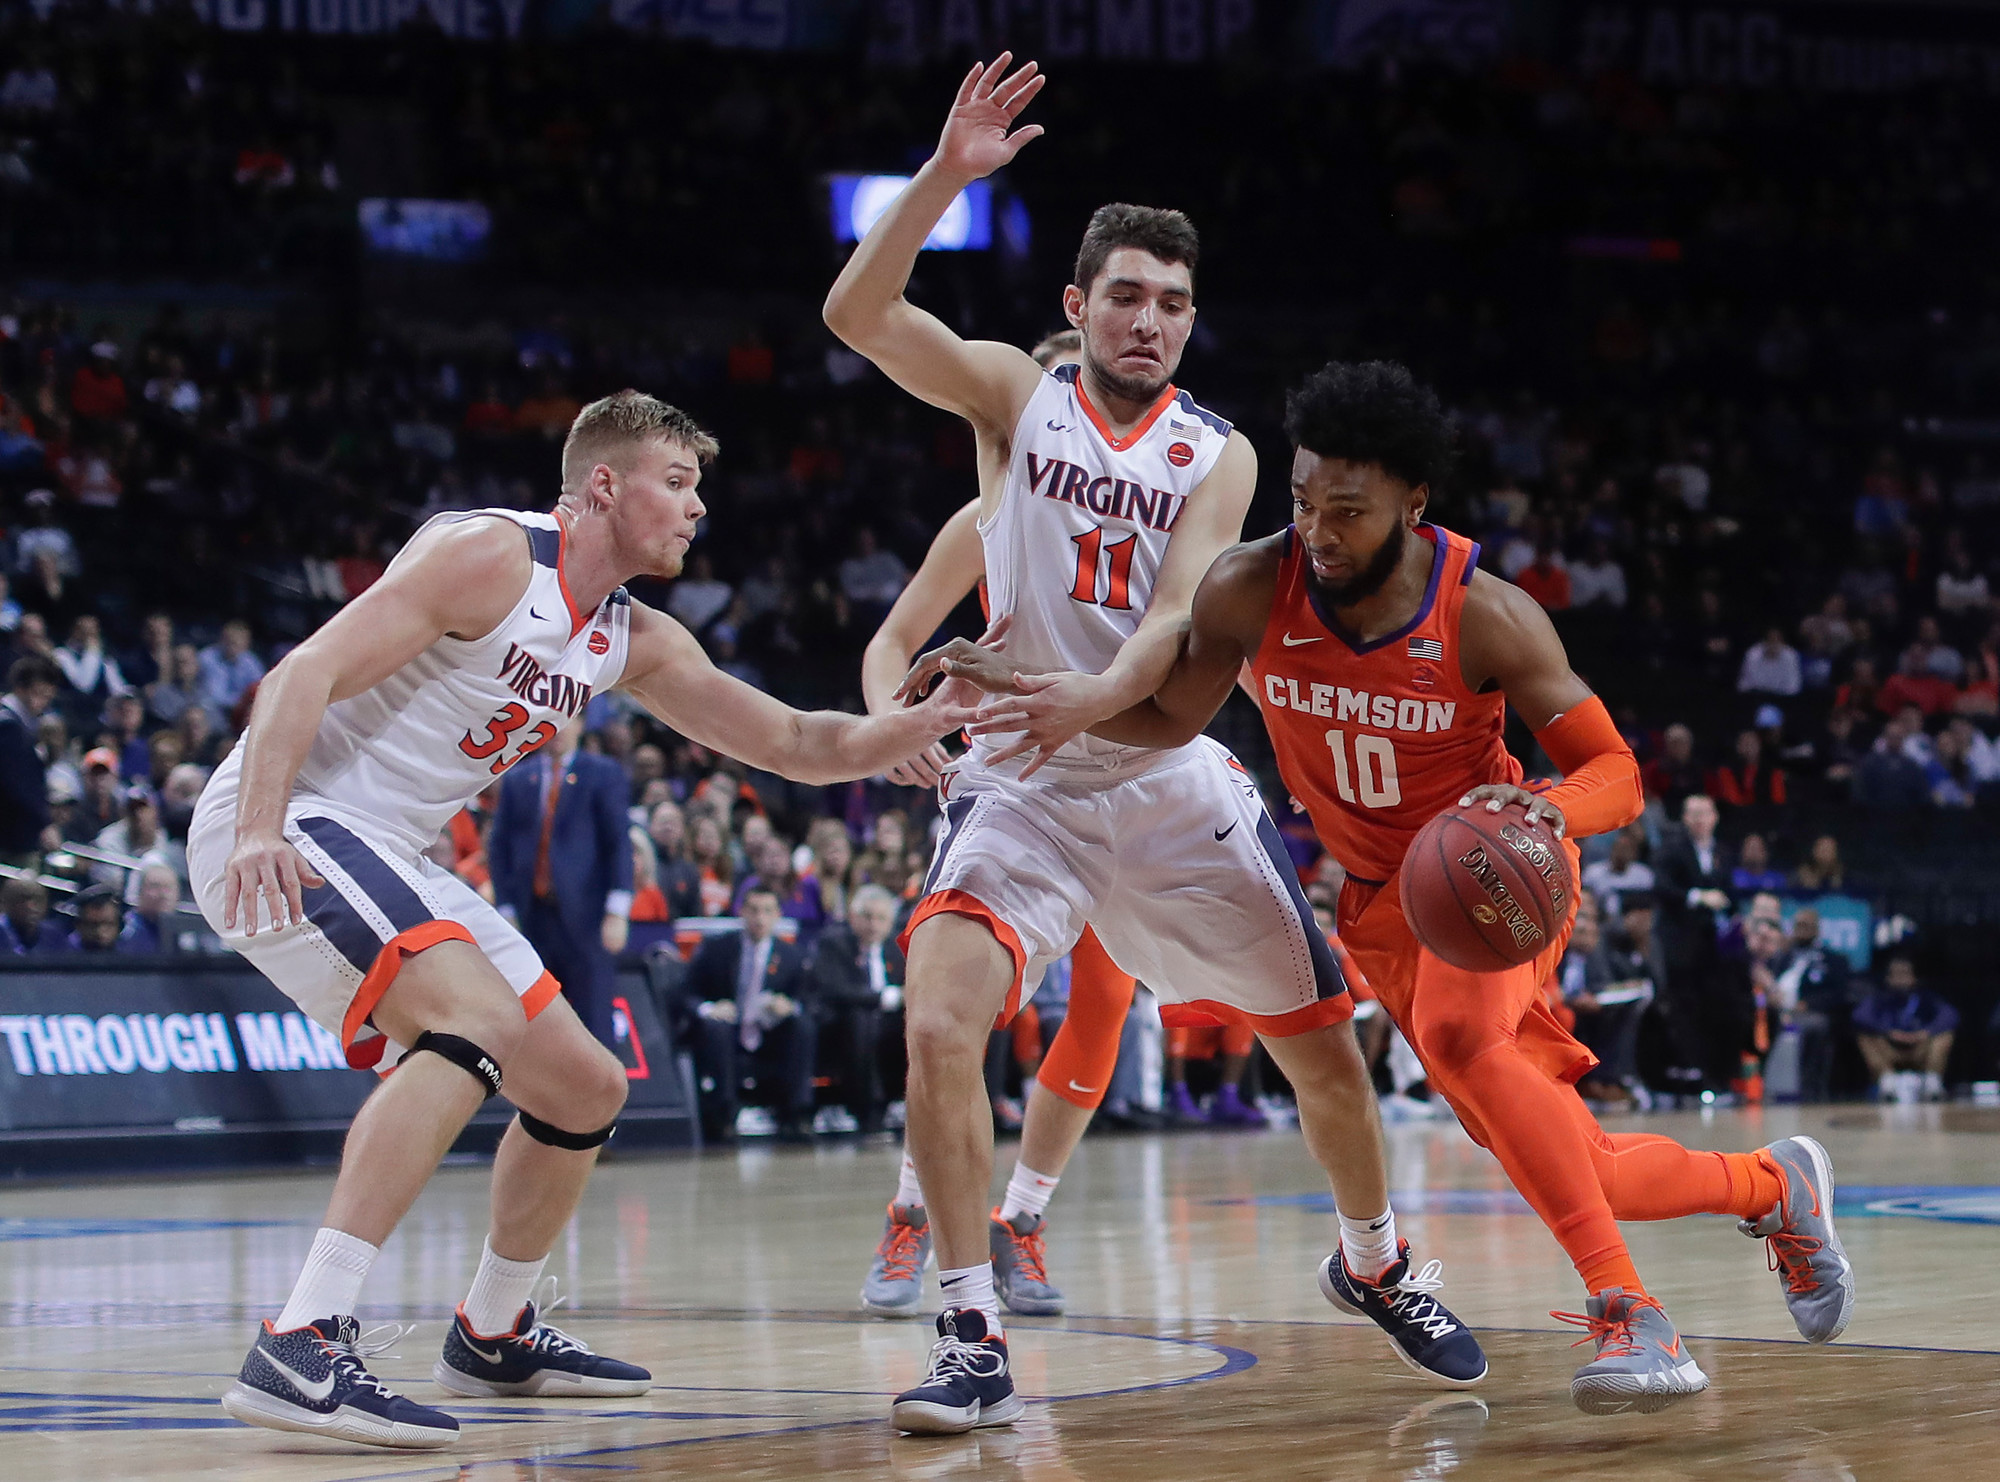 Clemson guard Gabe DeVoe (10) drives against Virginia center Jack Salt (33) and guard Ty Jerome (11) during the Tigers' 64-58 loss in an Atlantic Coast Conference tournament semifinal game on Friday in New York.